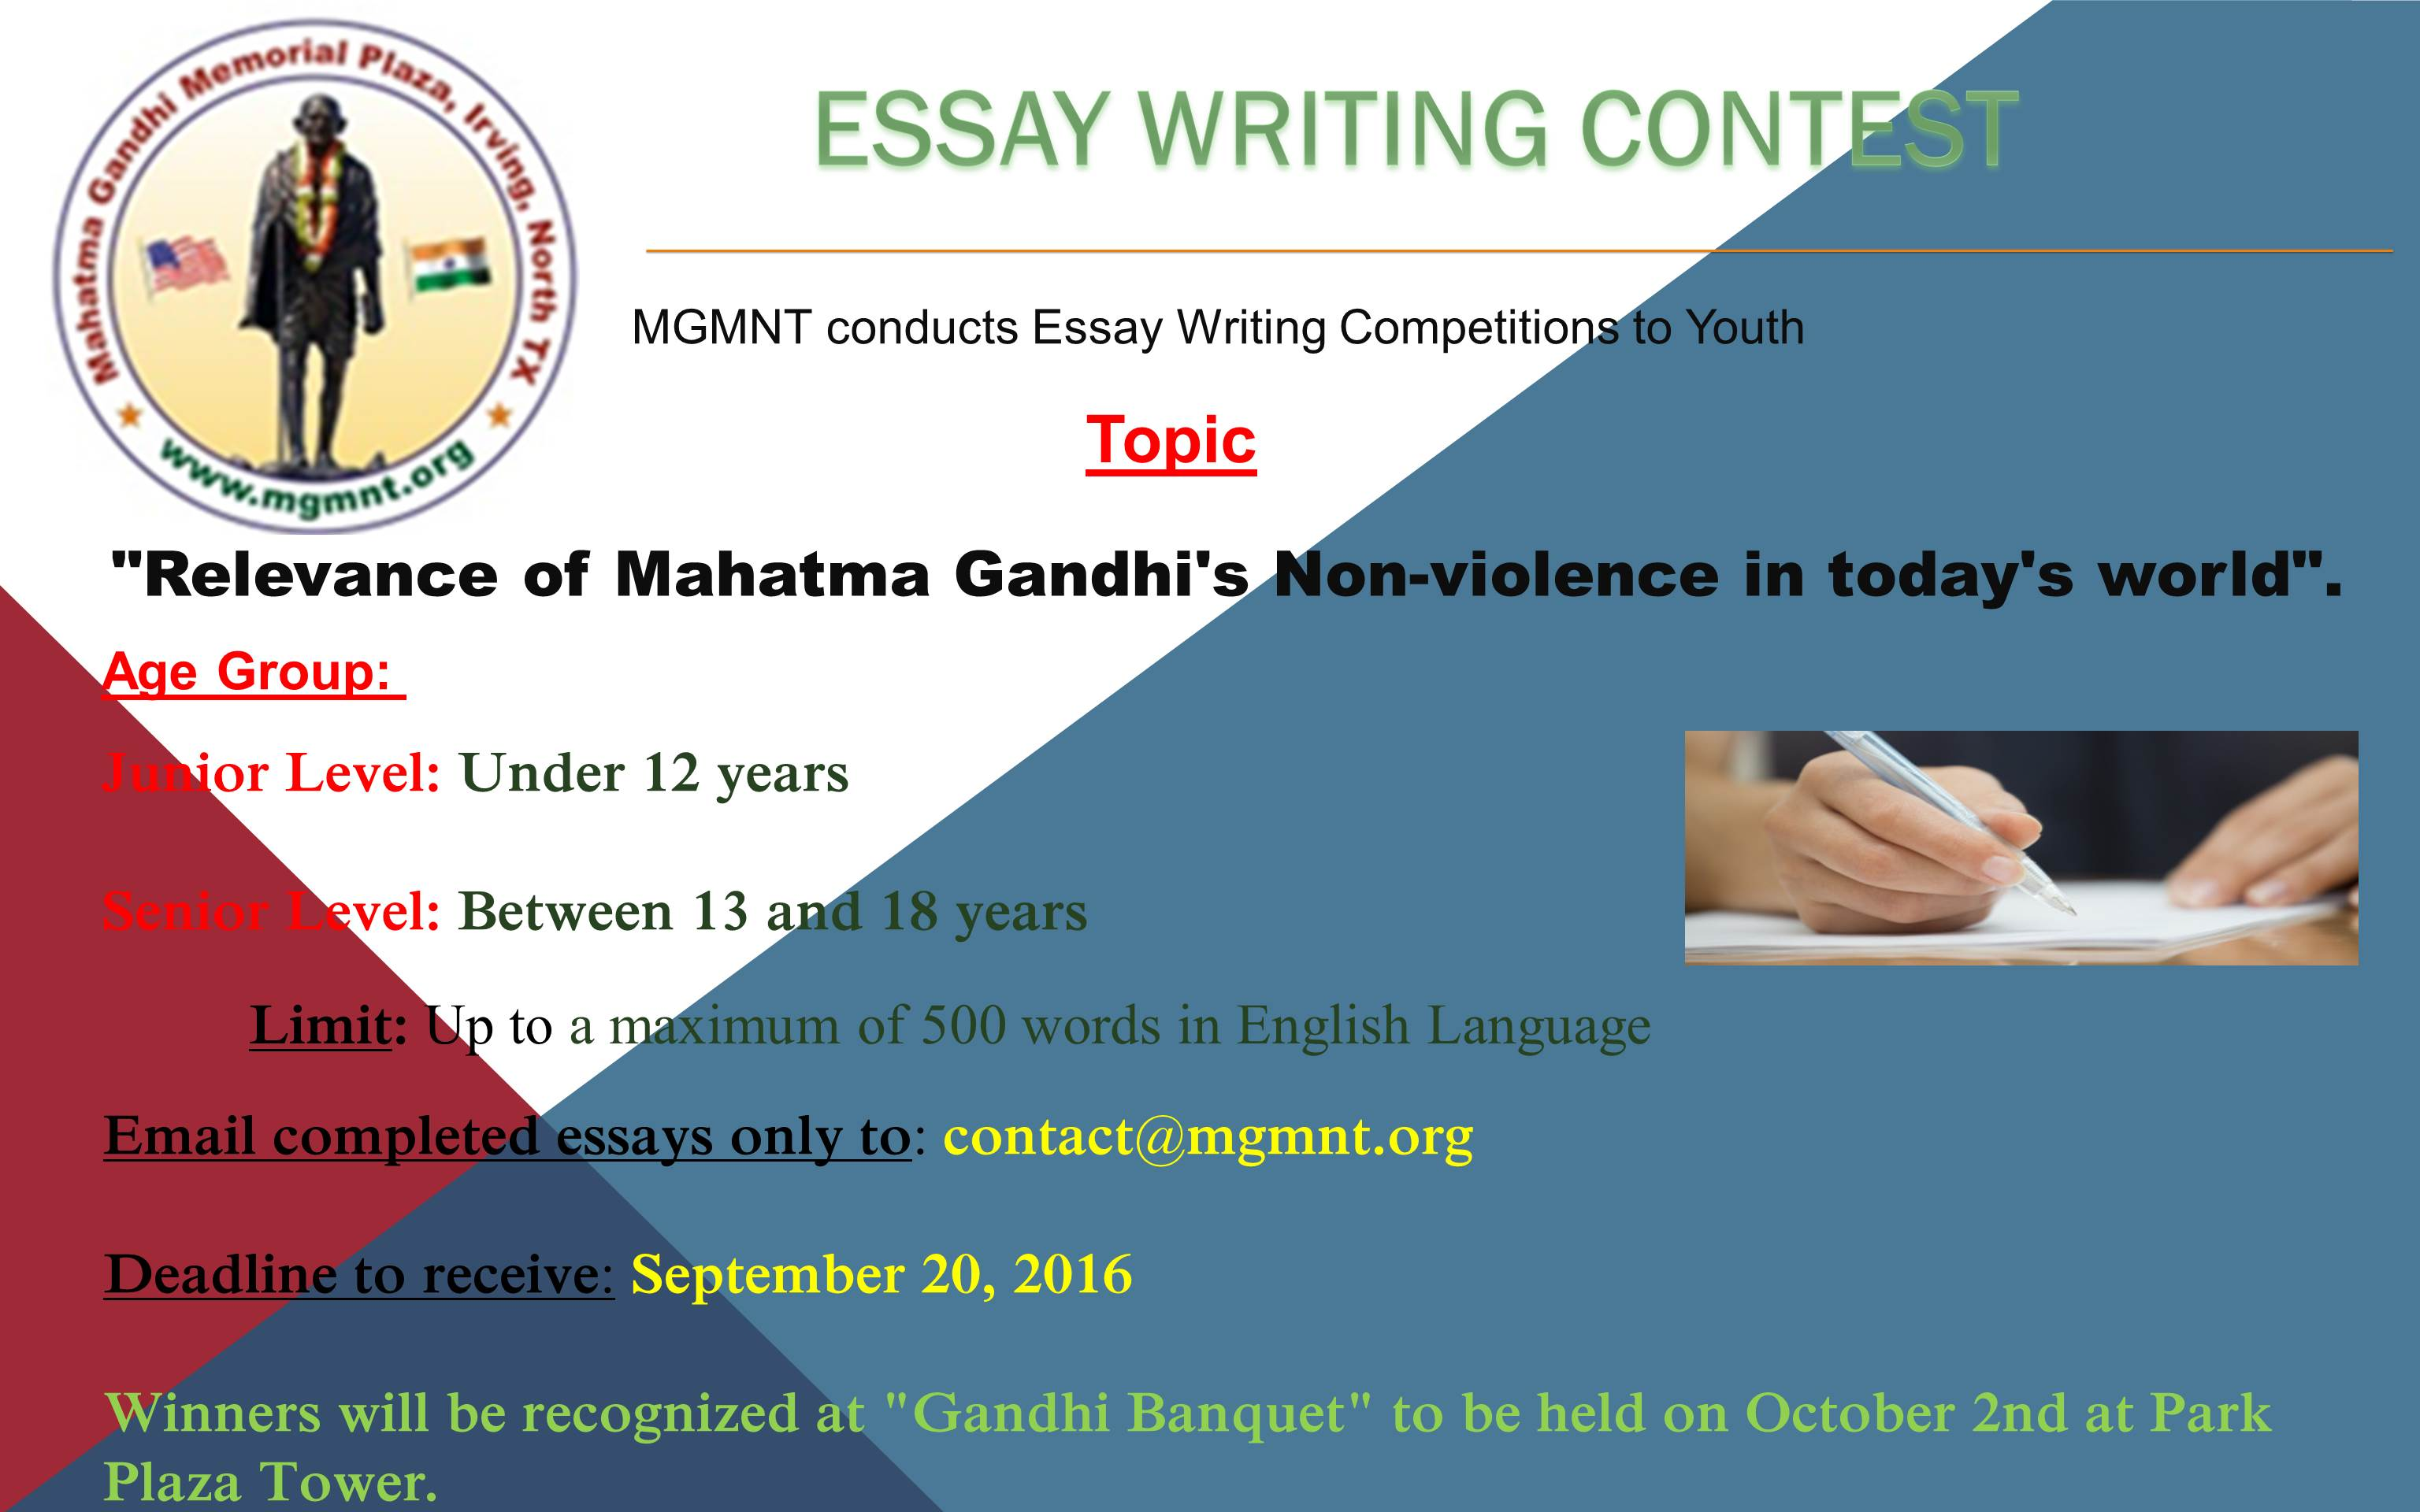 essay relevance mahatma gandhi today